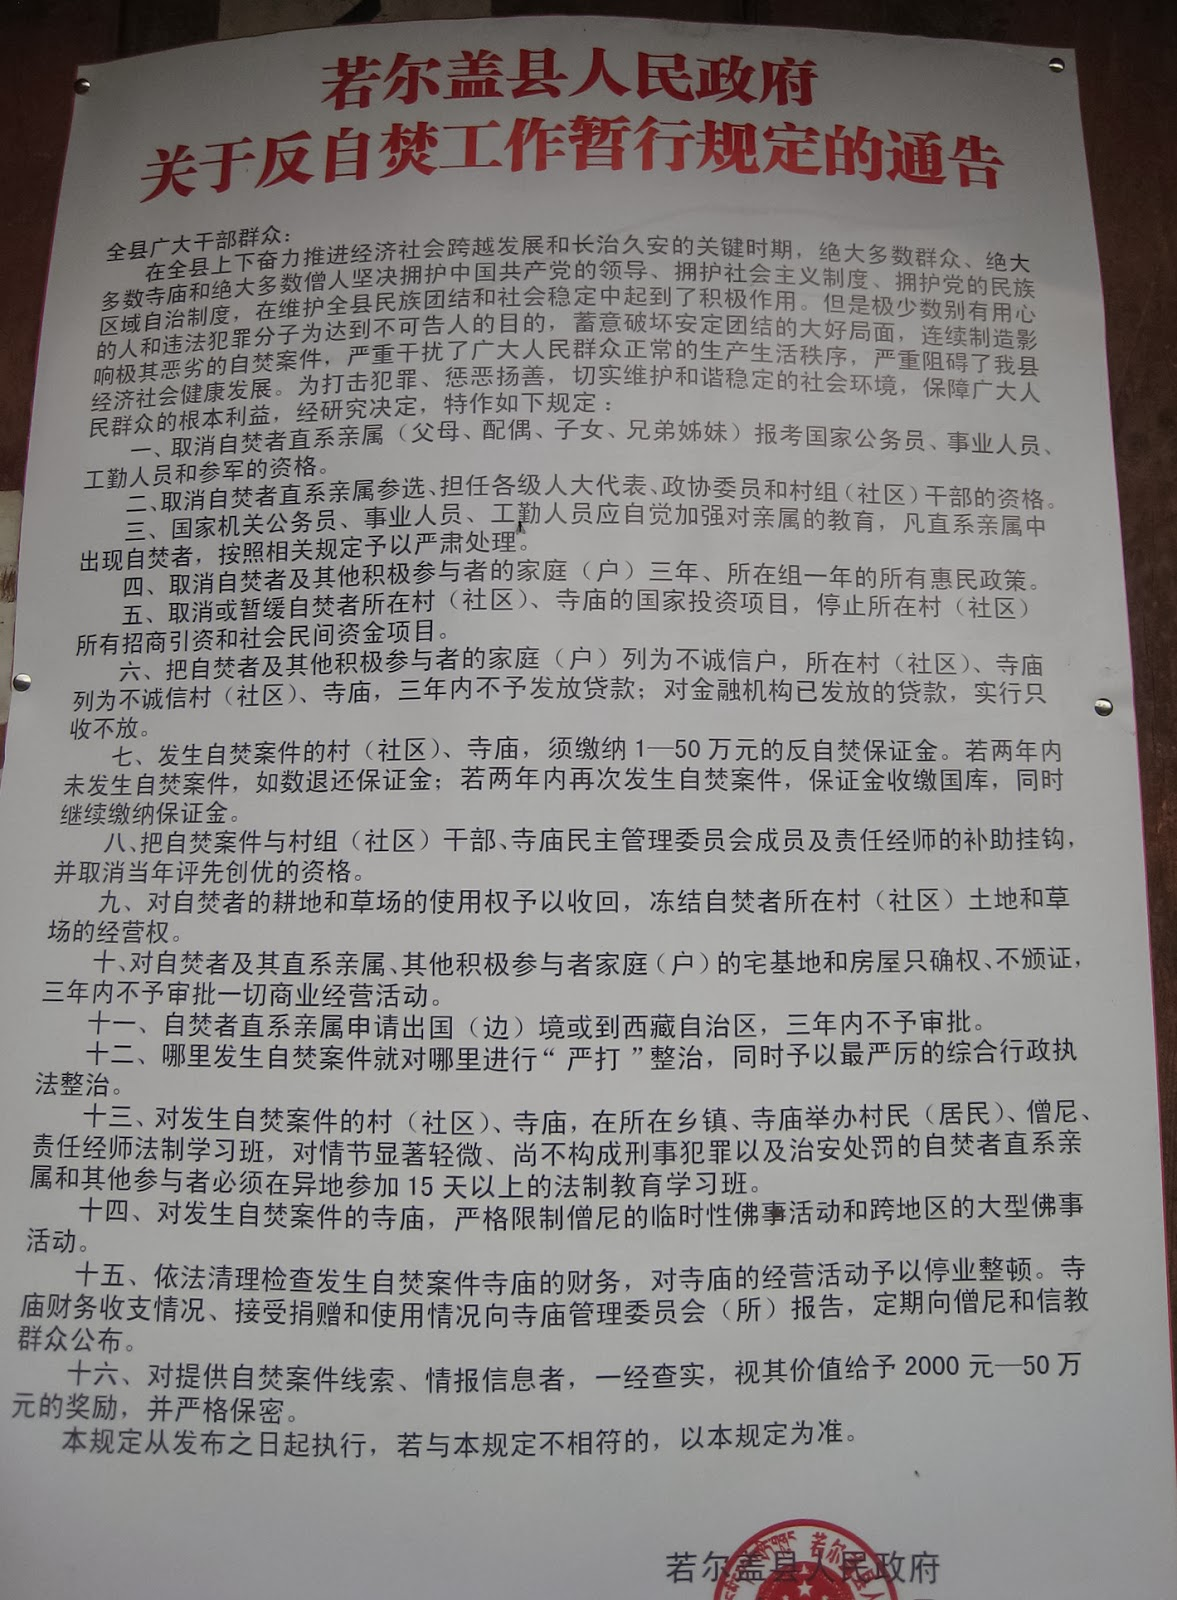 The-Chinese-Authorities-issued-a-sixteen-points-Notice-against-Self-immolation